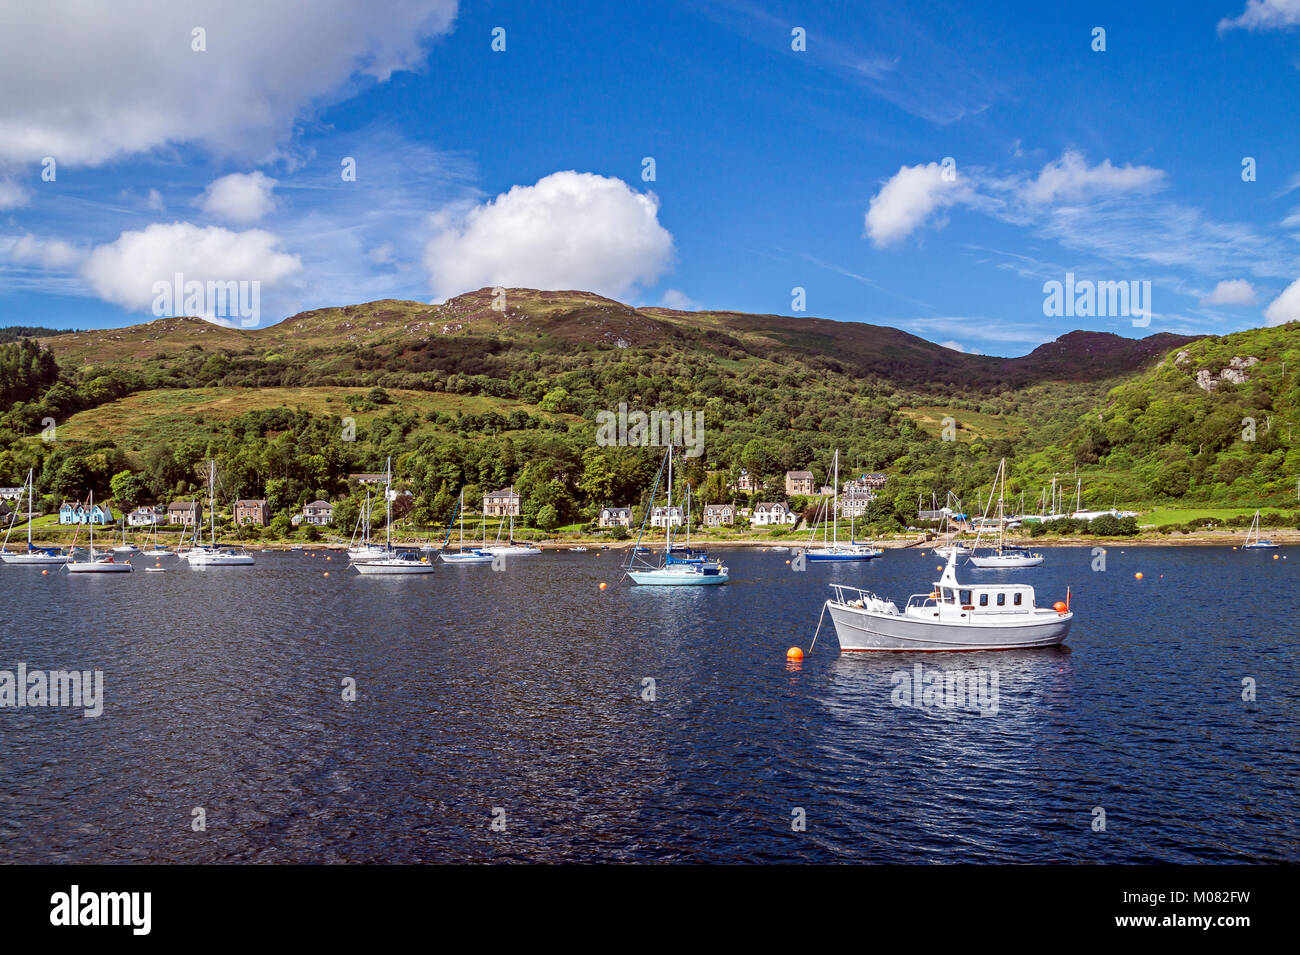 Pleasure vessels anchored in The Kyles of Bute at Tighnabruaich Argyll and Bute Scotland UK - Stock Image